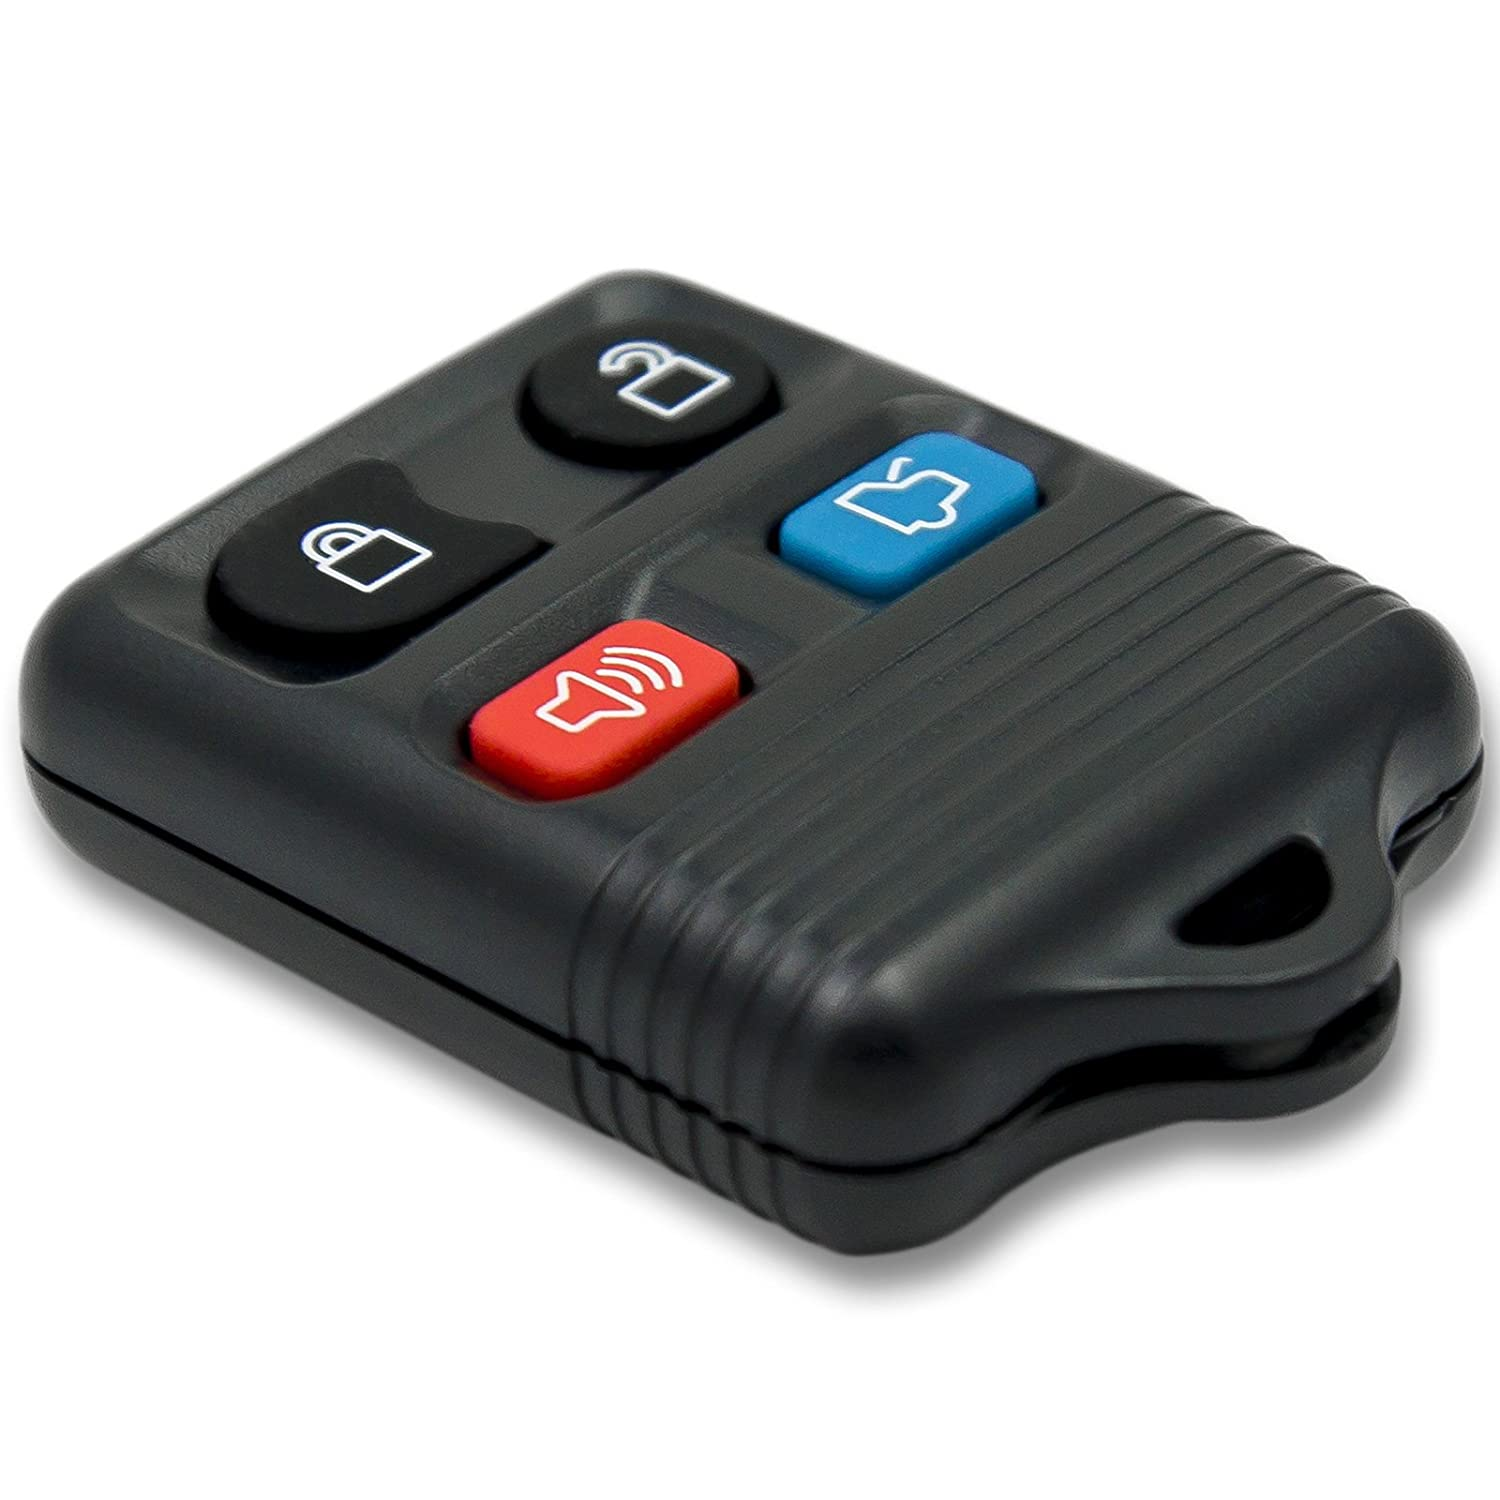 Keyless2Go R-FD-4.go Entry Remote Car Key Fob Replacement for Vehicles That Use Self-Programming